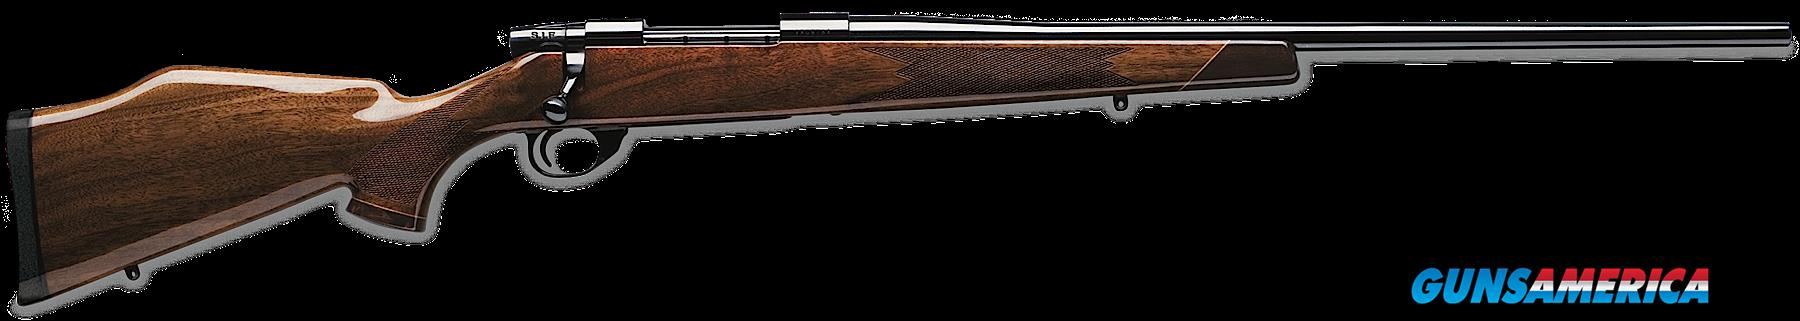 "Weatherby VGX300WR4O Vanguard Series 2 Deluxe Bolt 300 Weatherby Magnum 24"" 3+1 Walnut Stk Blued  Guns > Rifles > W Misc Rifles"